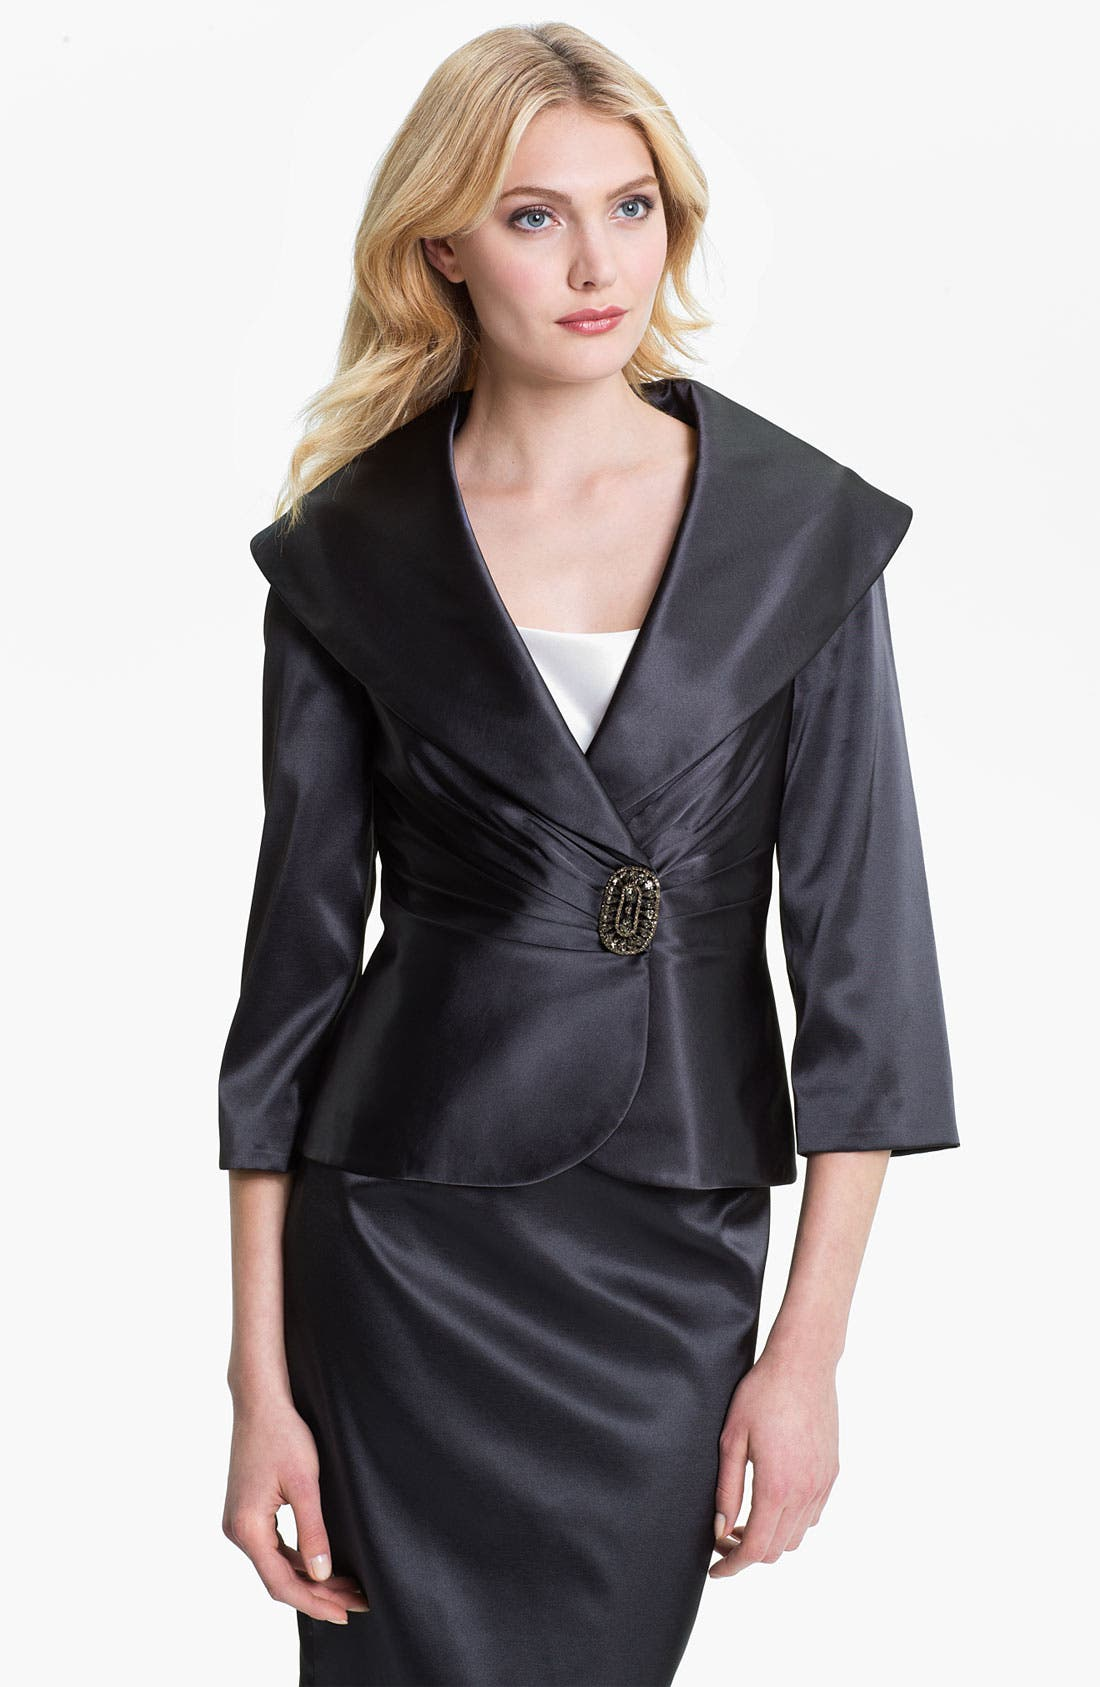 Alternate Image 1 Selected - Adrianna Papell Portrait Collar Satin Jacket